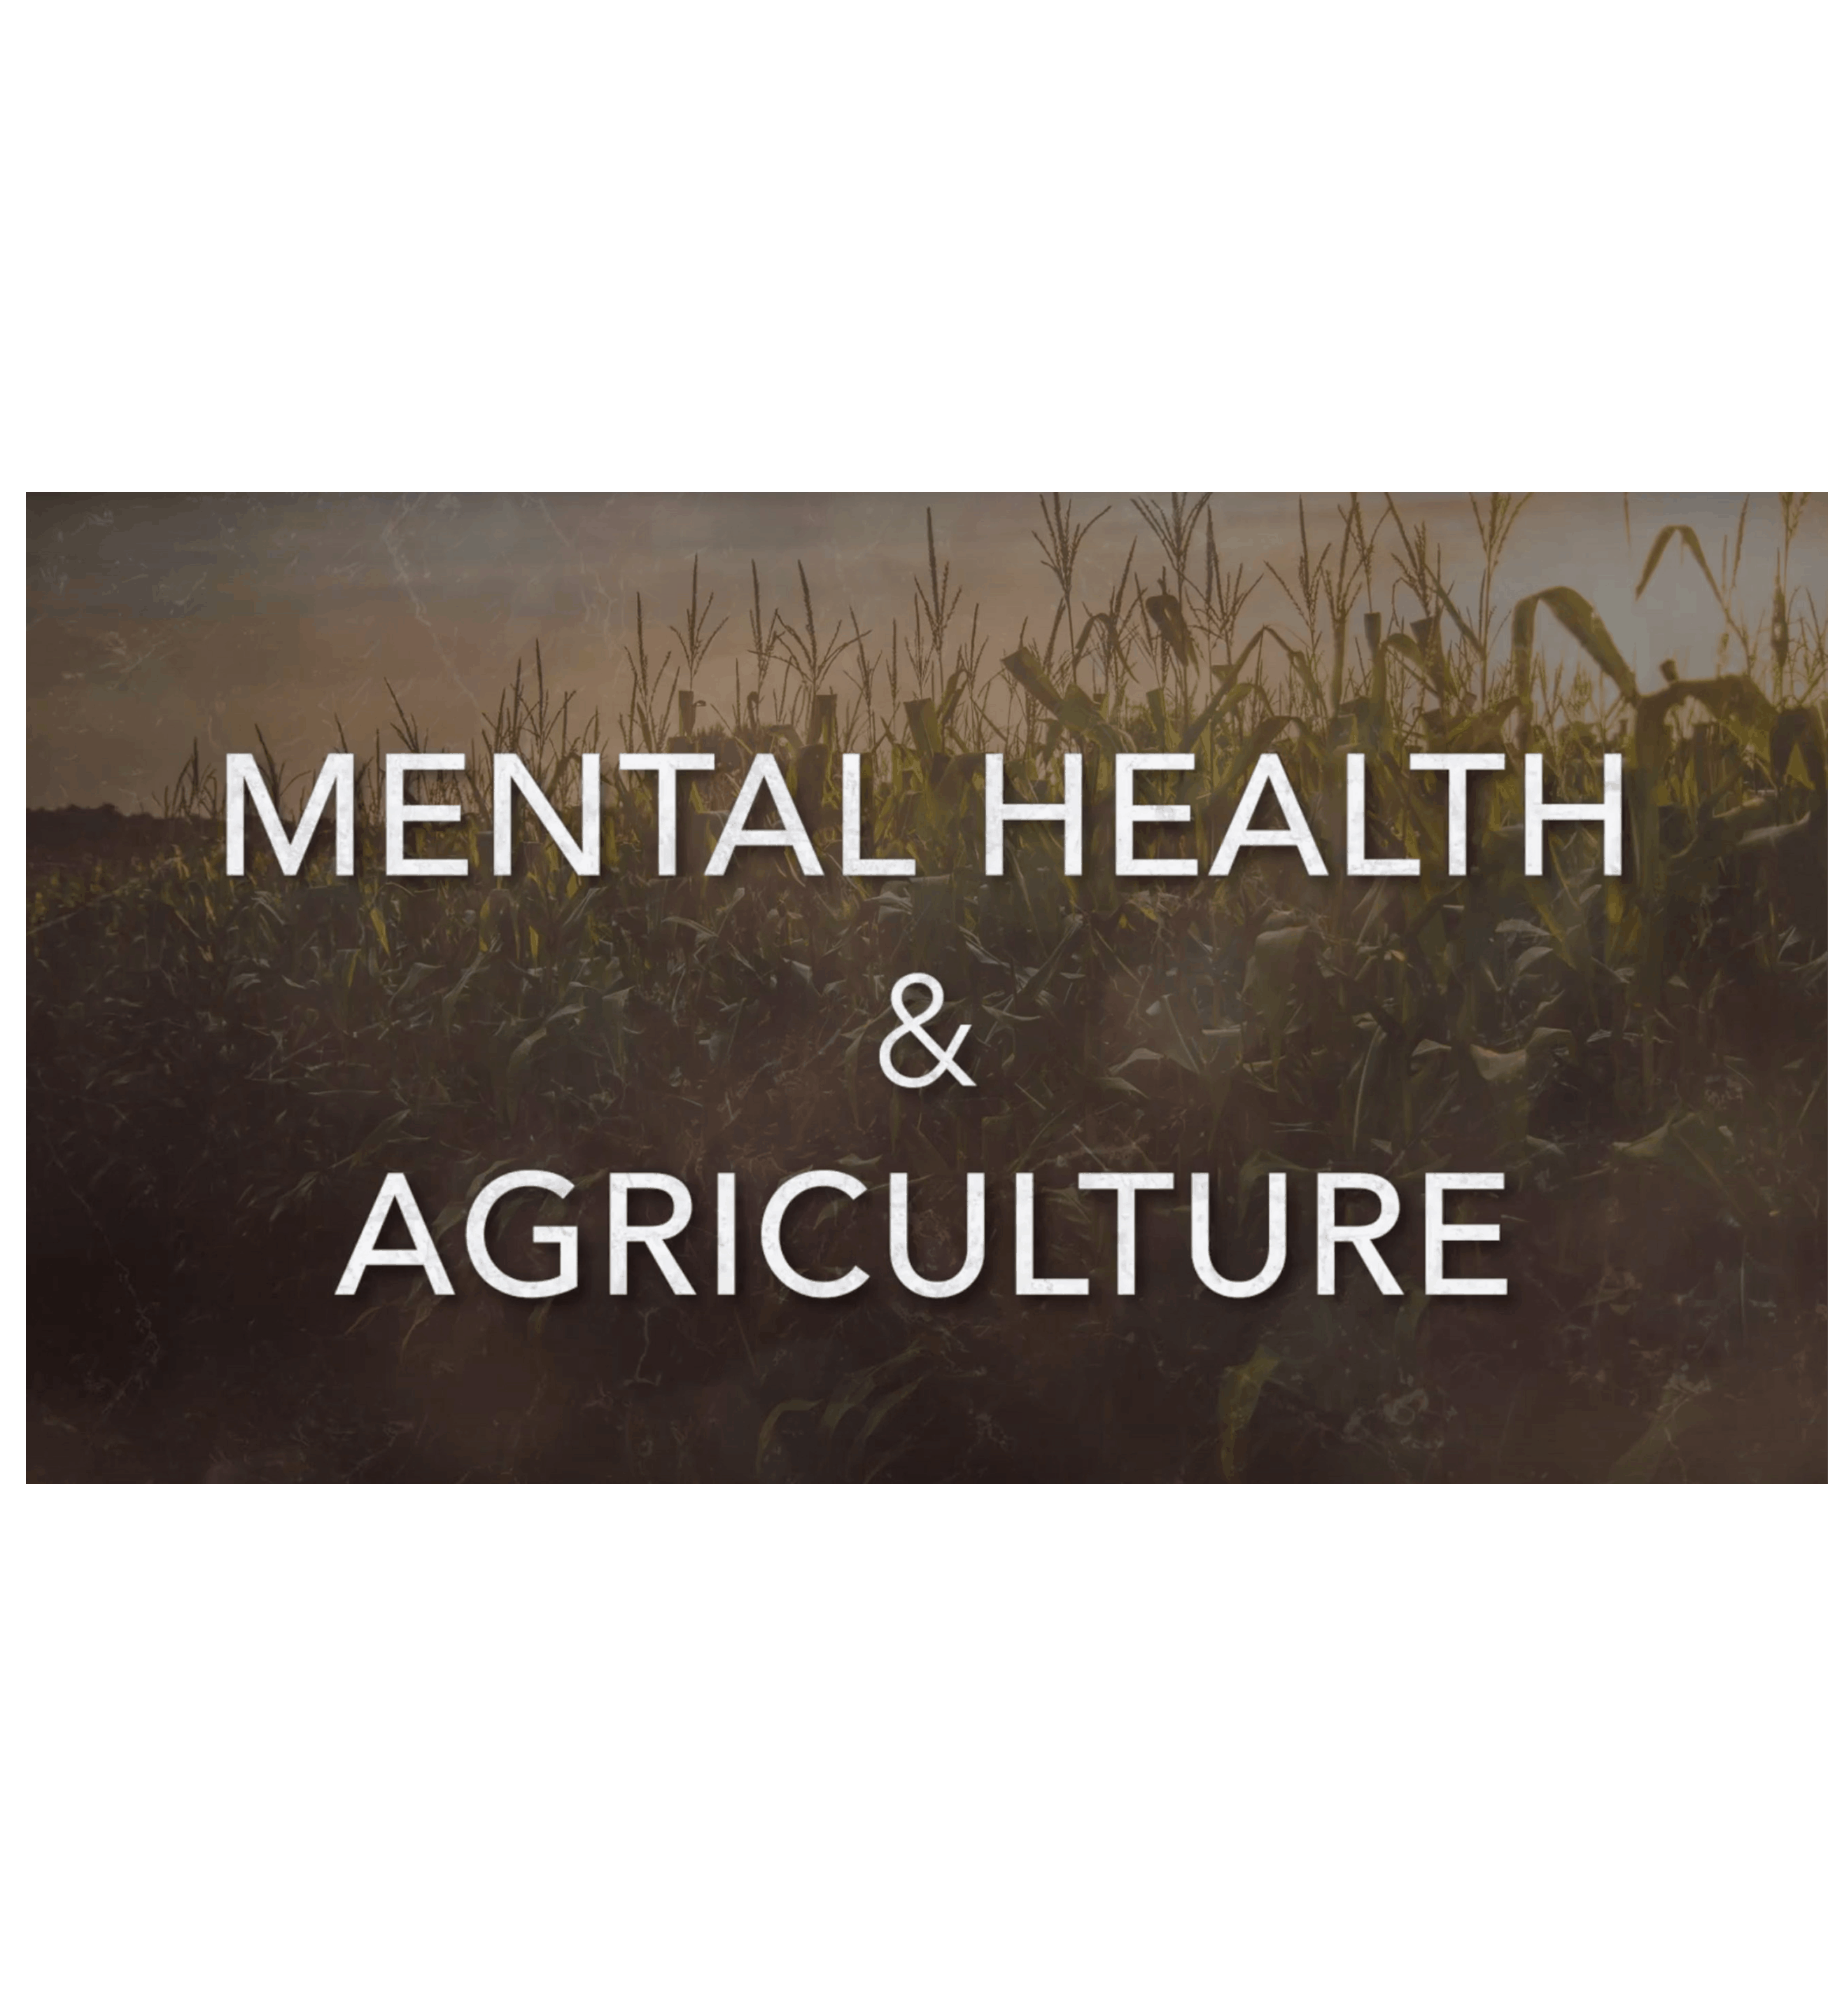 Mental Health and Agriculture Image